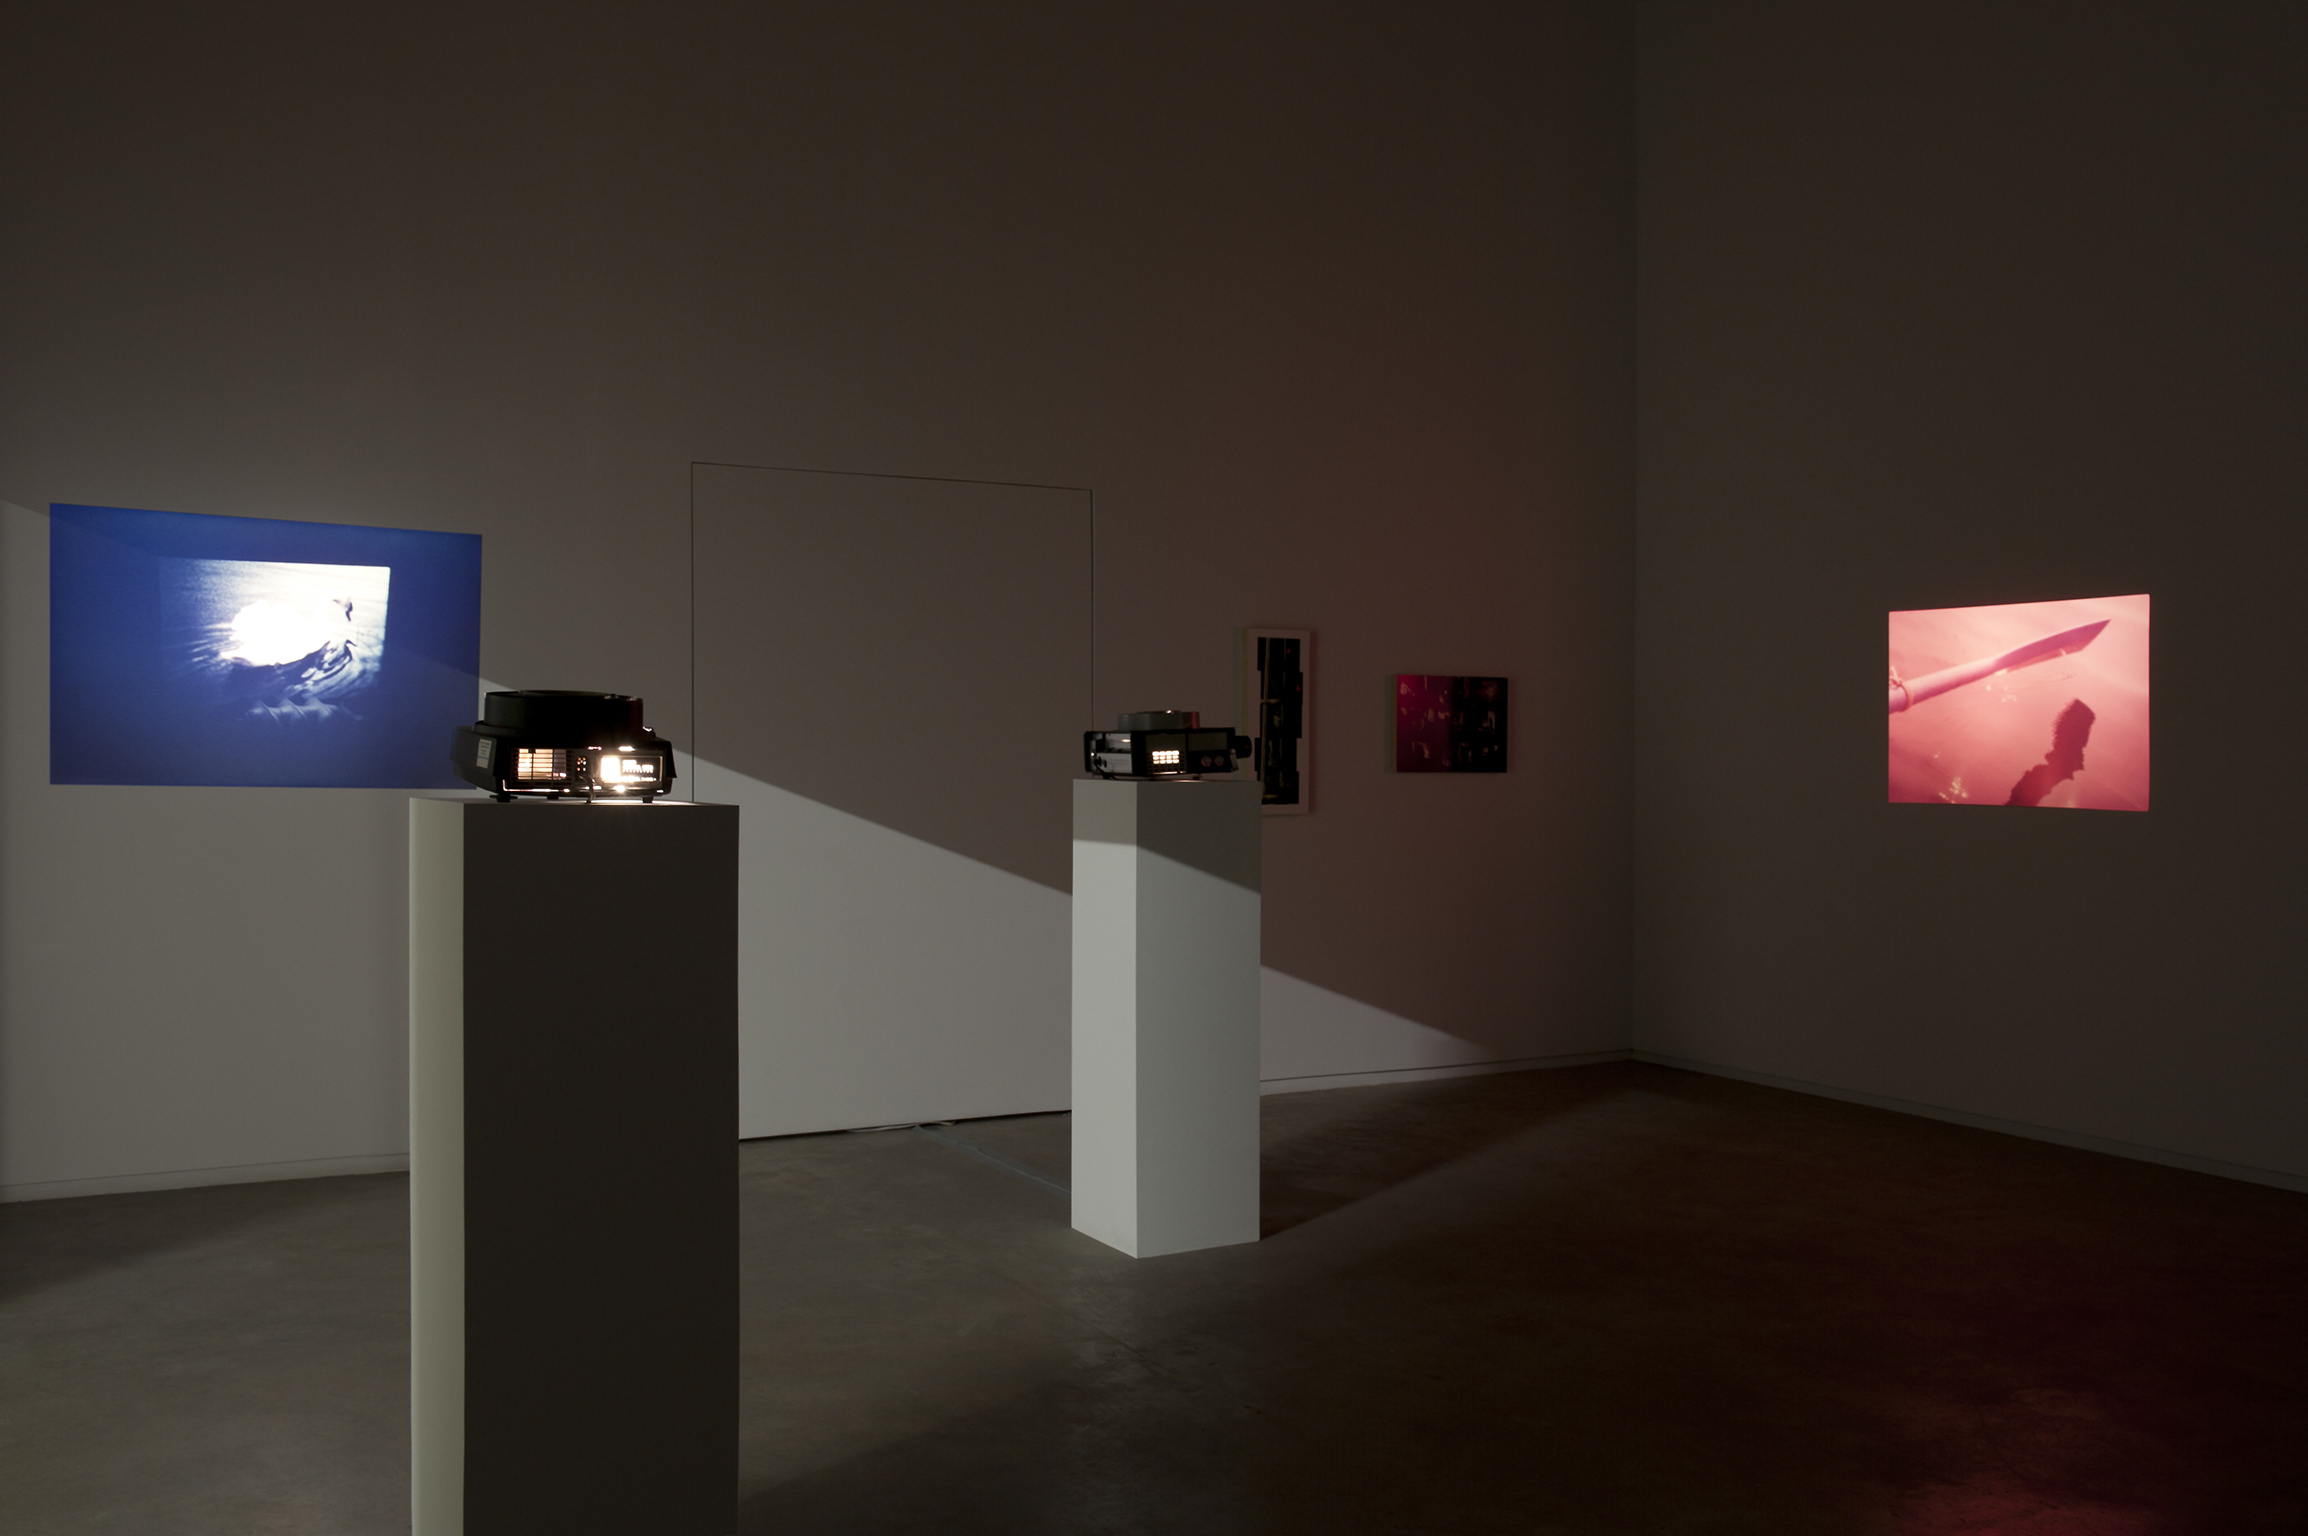 Robert Kleyn, installation view, Works 1969–1983, Catriona Jeffries, 2011 by